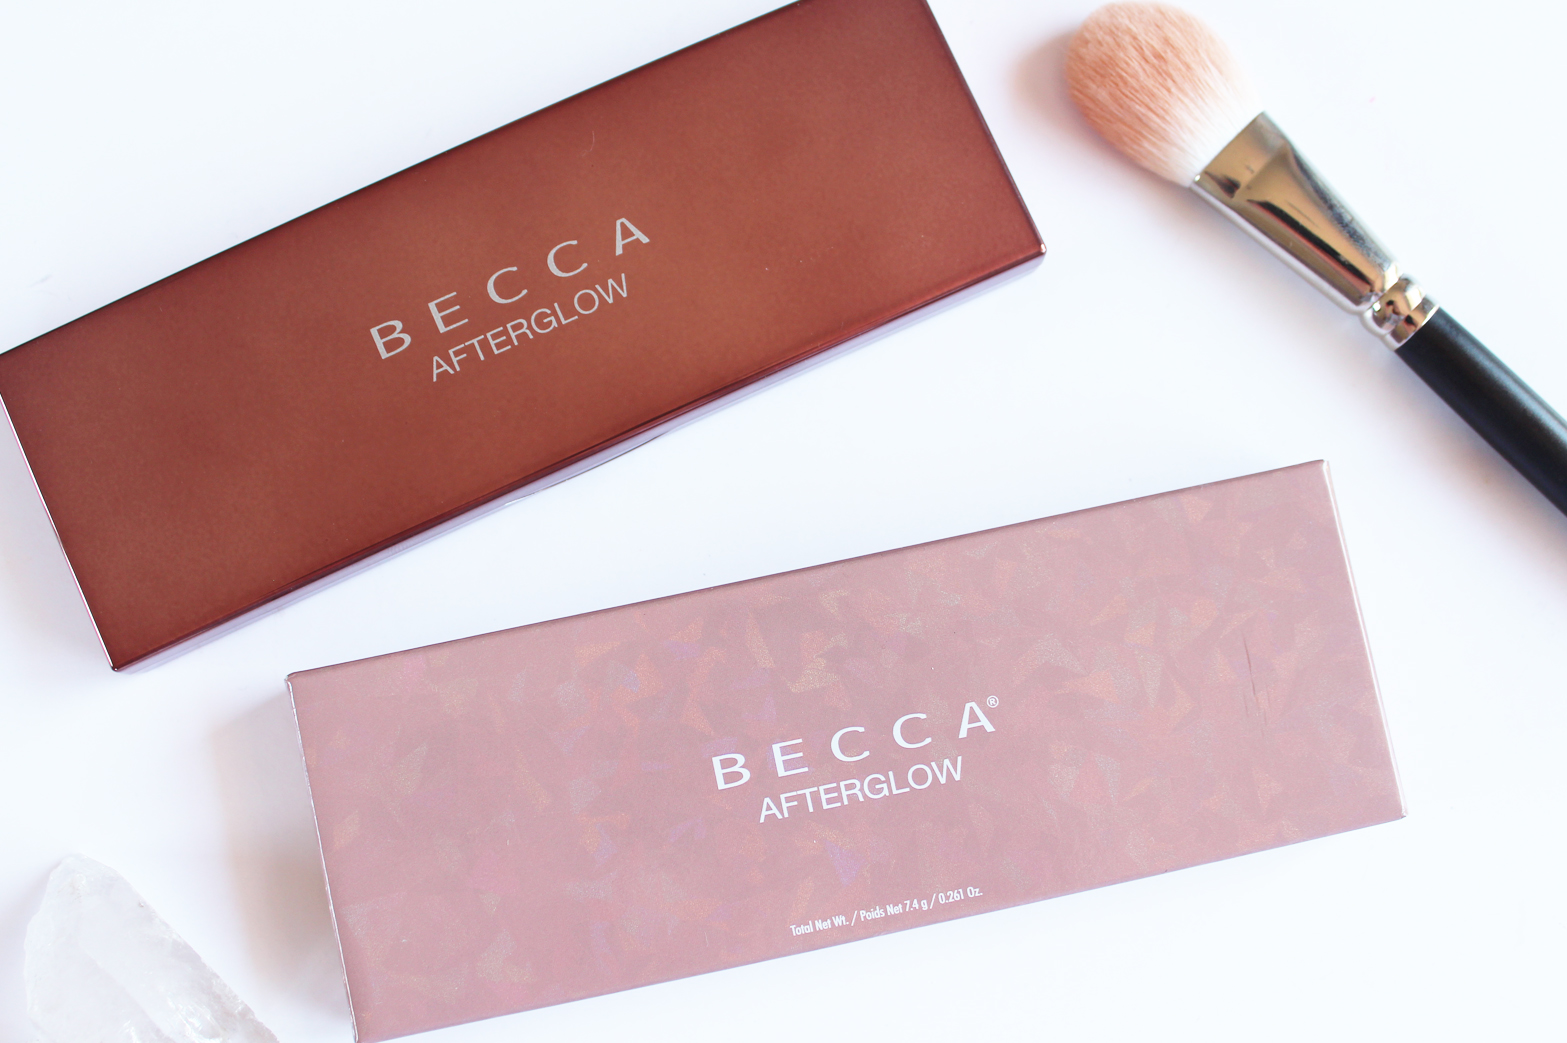 BECCA COSMETICS | Afterglow Palette - Review + Swatches - CassandraMyee